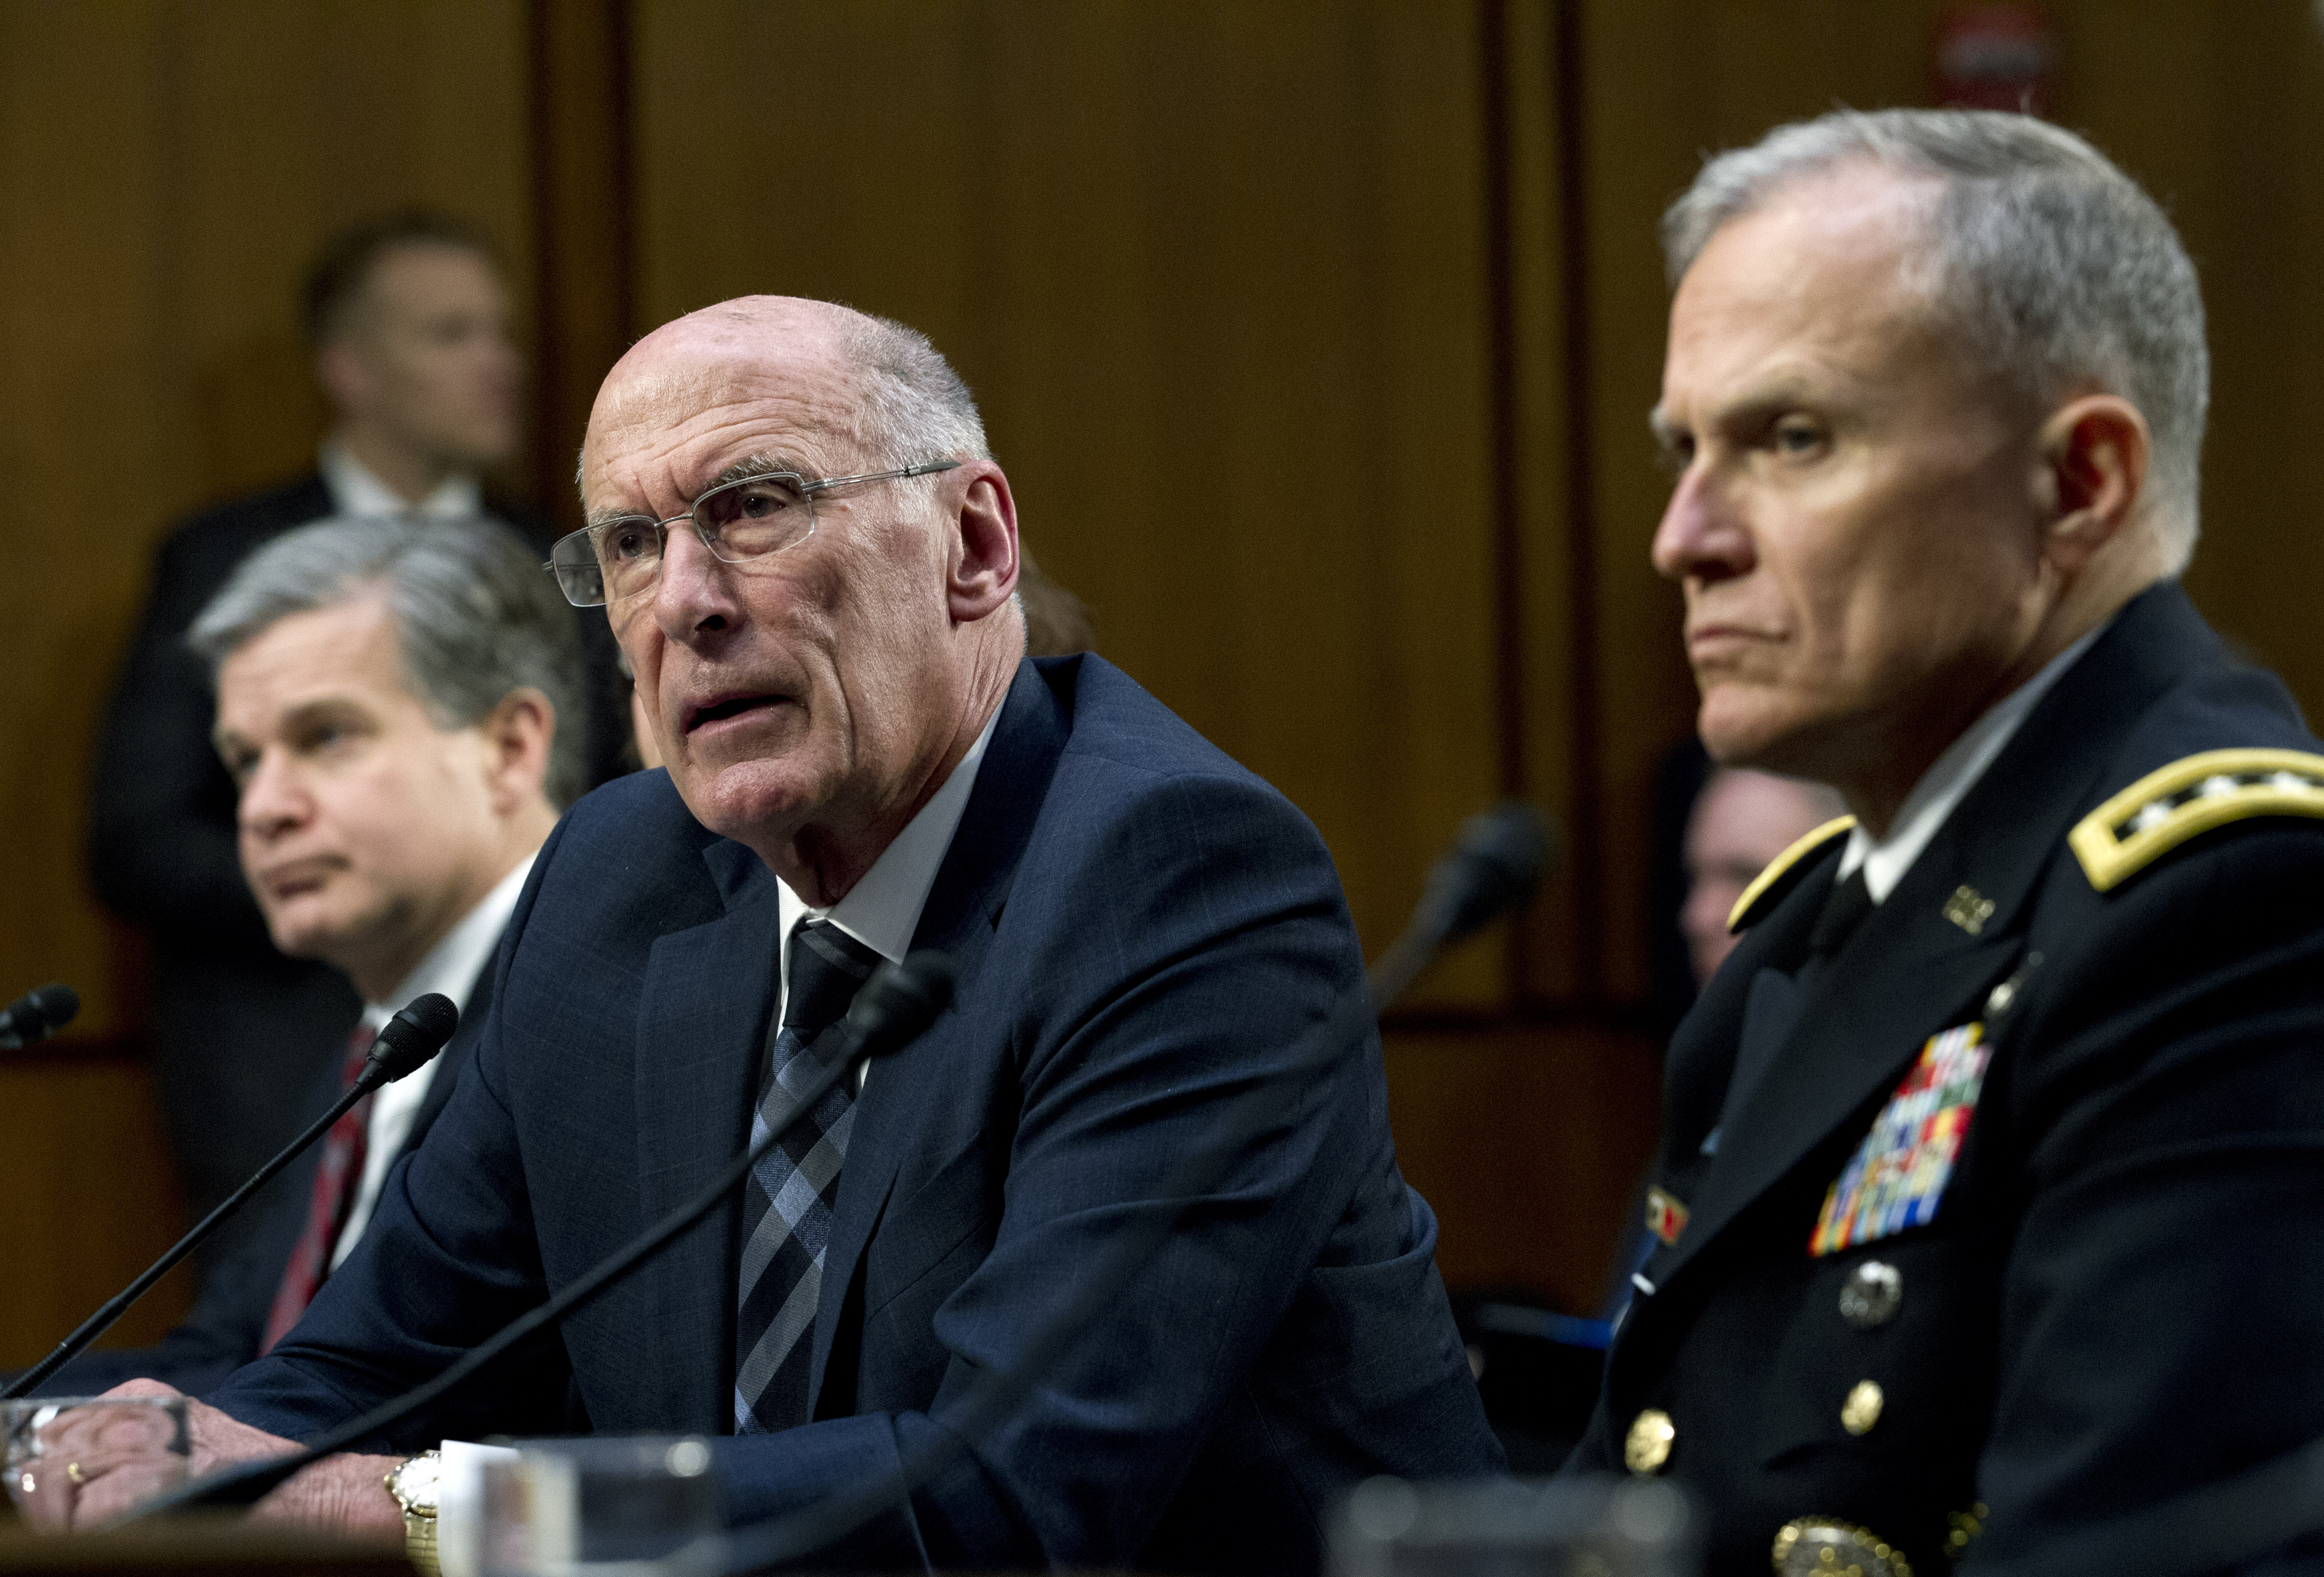 FILE - Director of National Intelligence Daniel Coats testifies before the Senate Intelligence Committee on Capitol Hill in Washington, Jan. 29, 2019.